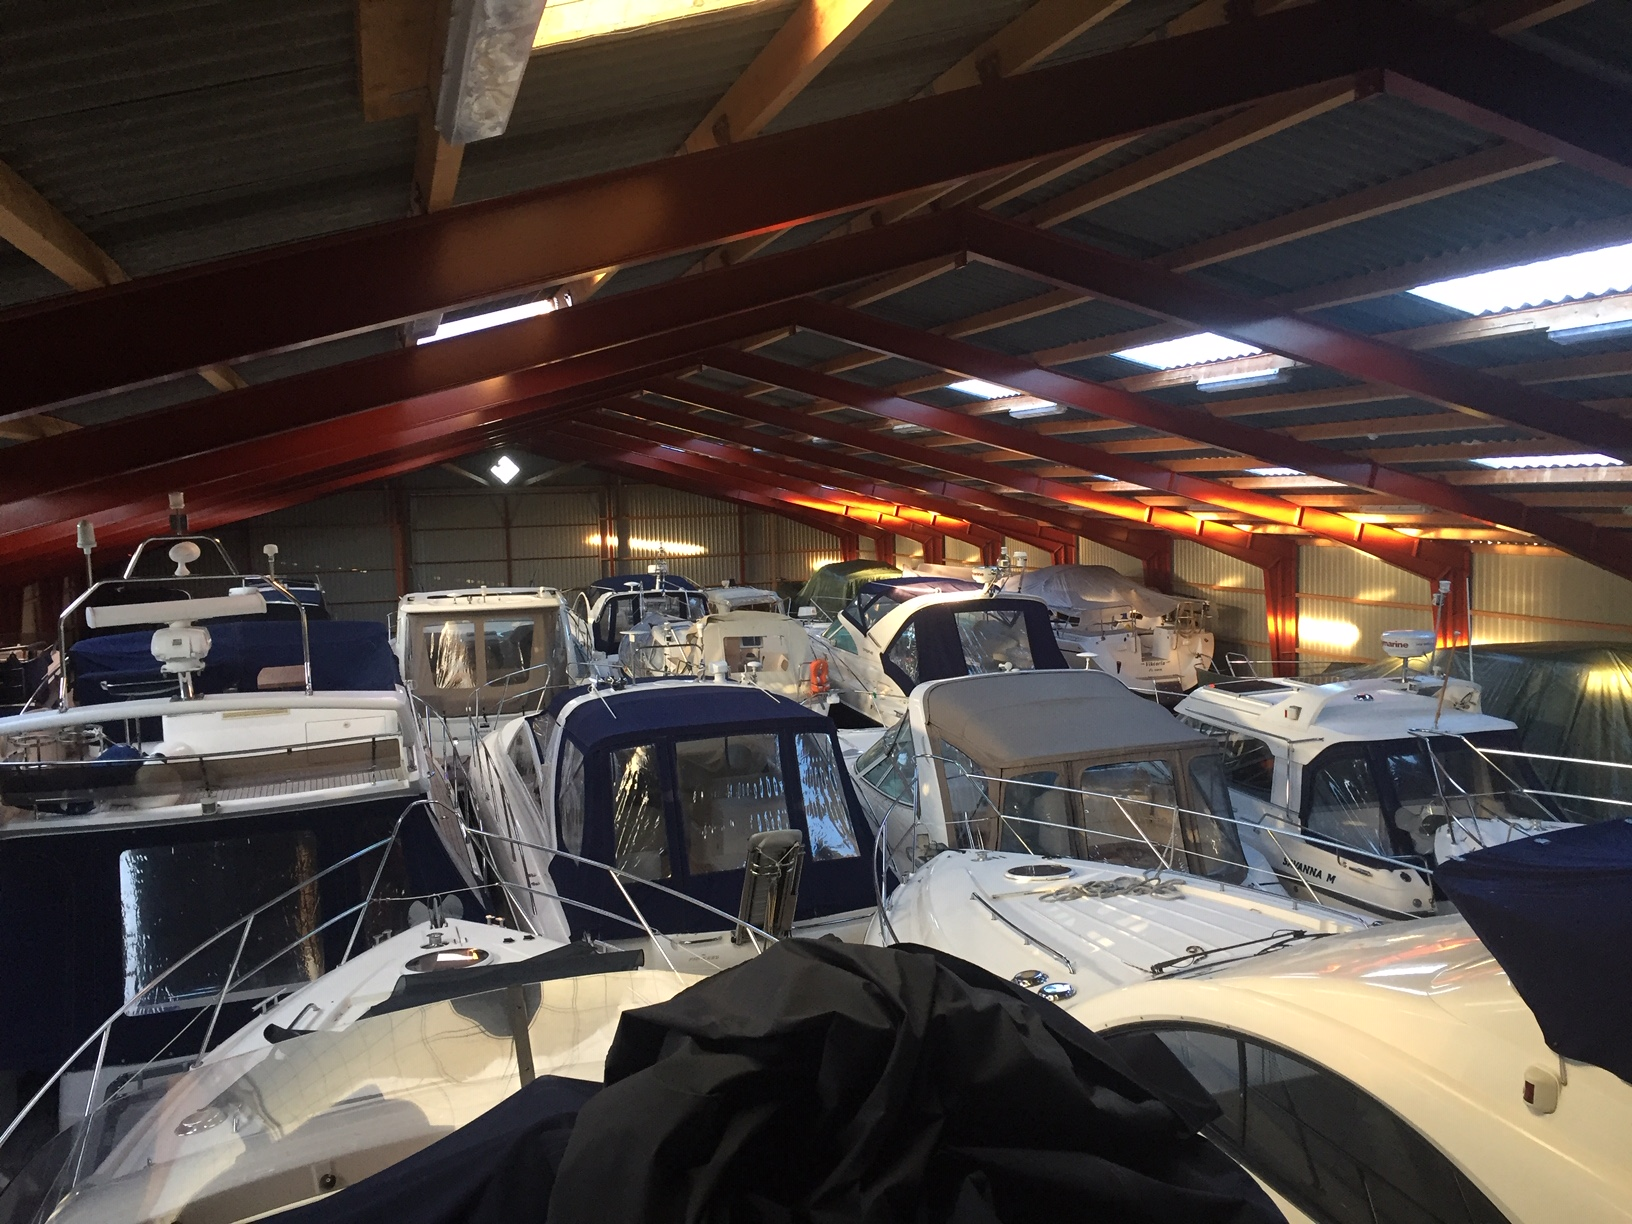 Picture of: Yachthallerne A S Danmarks Bedste Badopbevaring